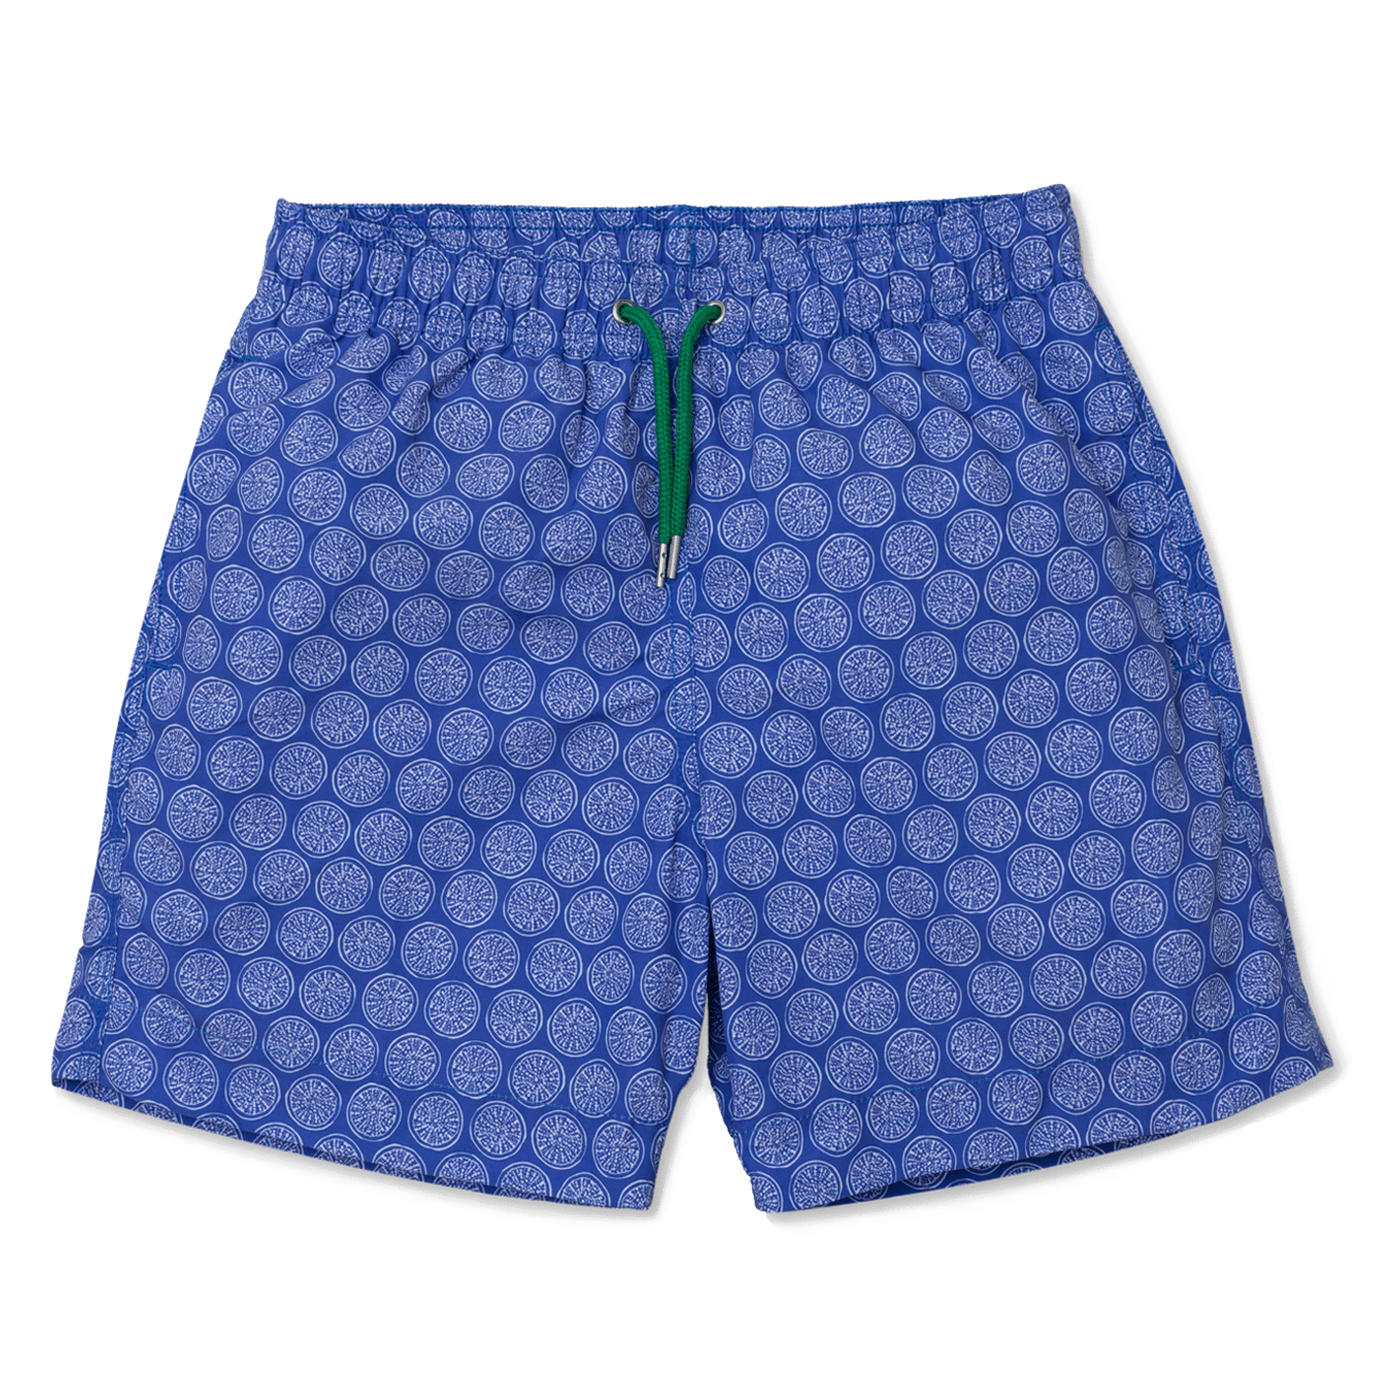 Sea Urchin - Blue / White - Mens